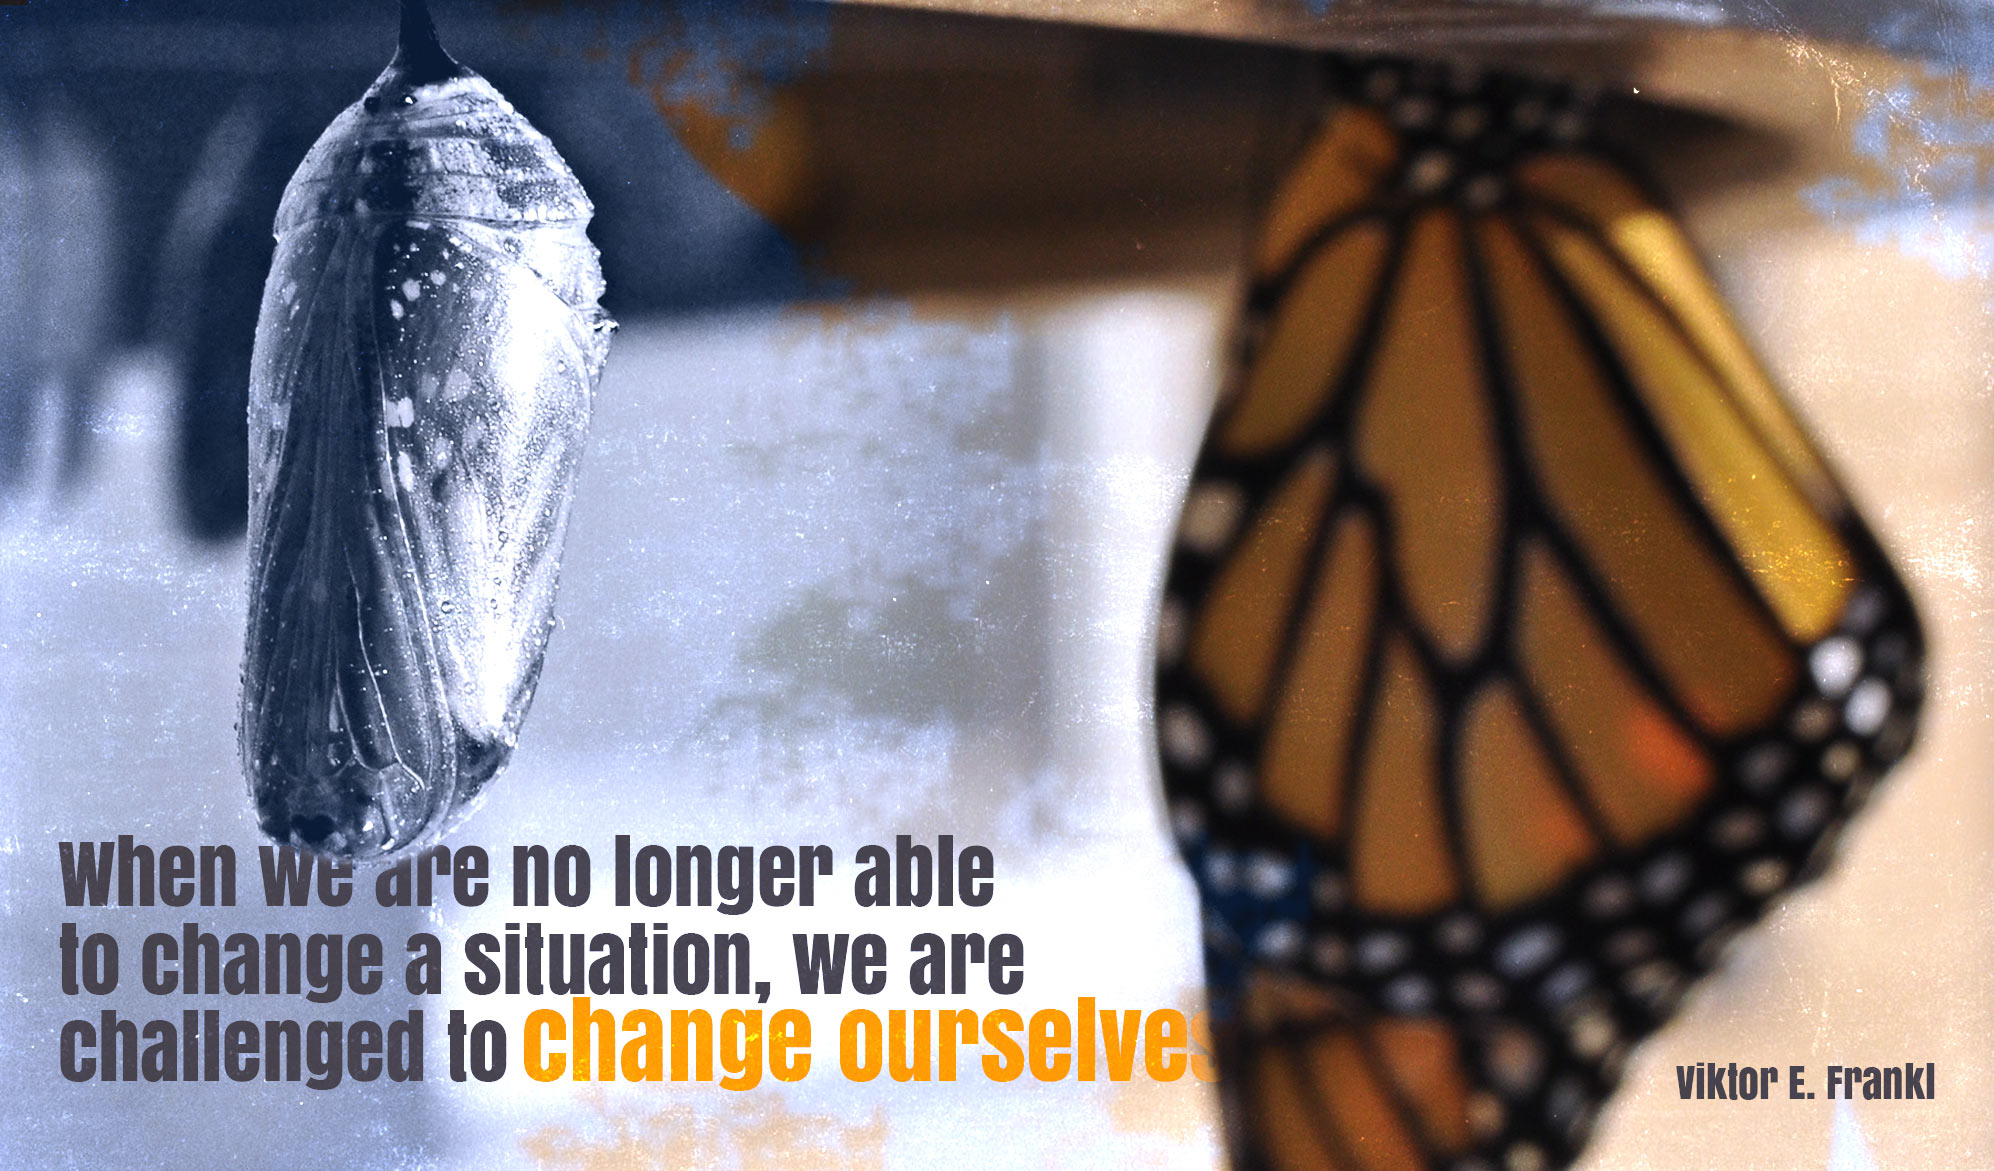 daily inspirational quote image: a chrysalis and a butterfly side by side